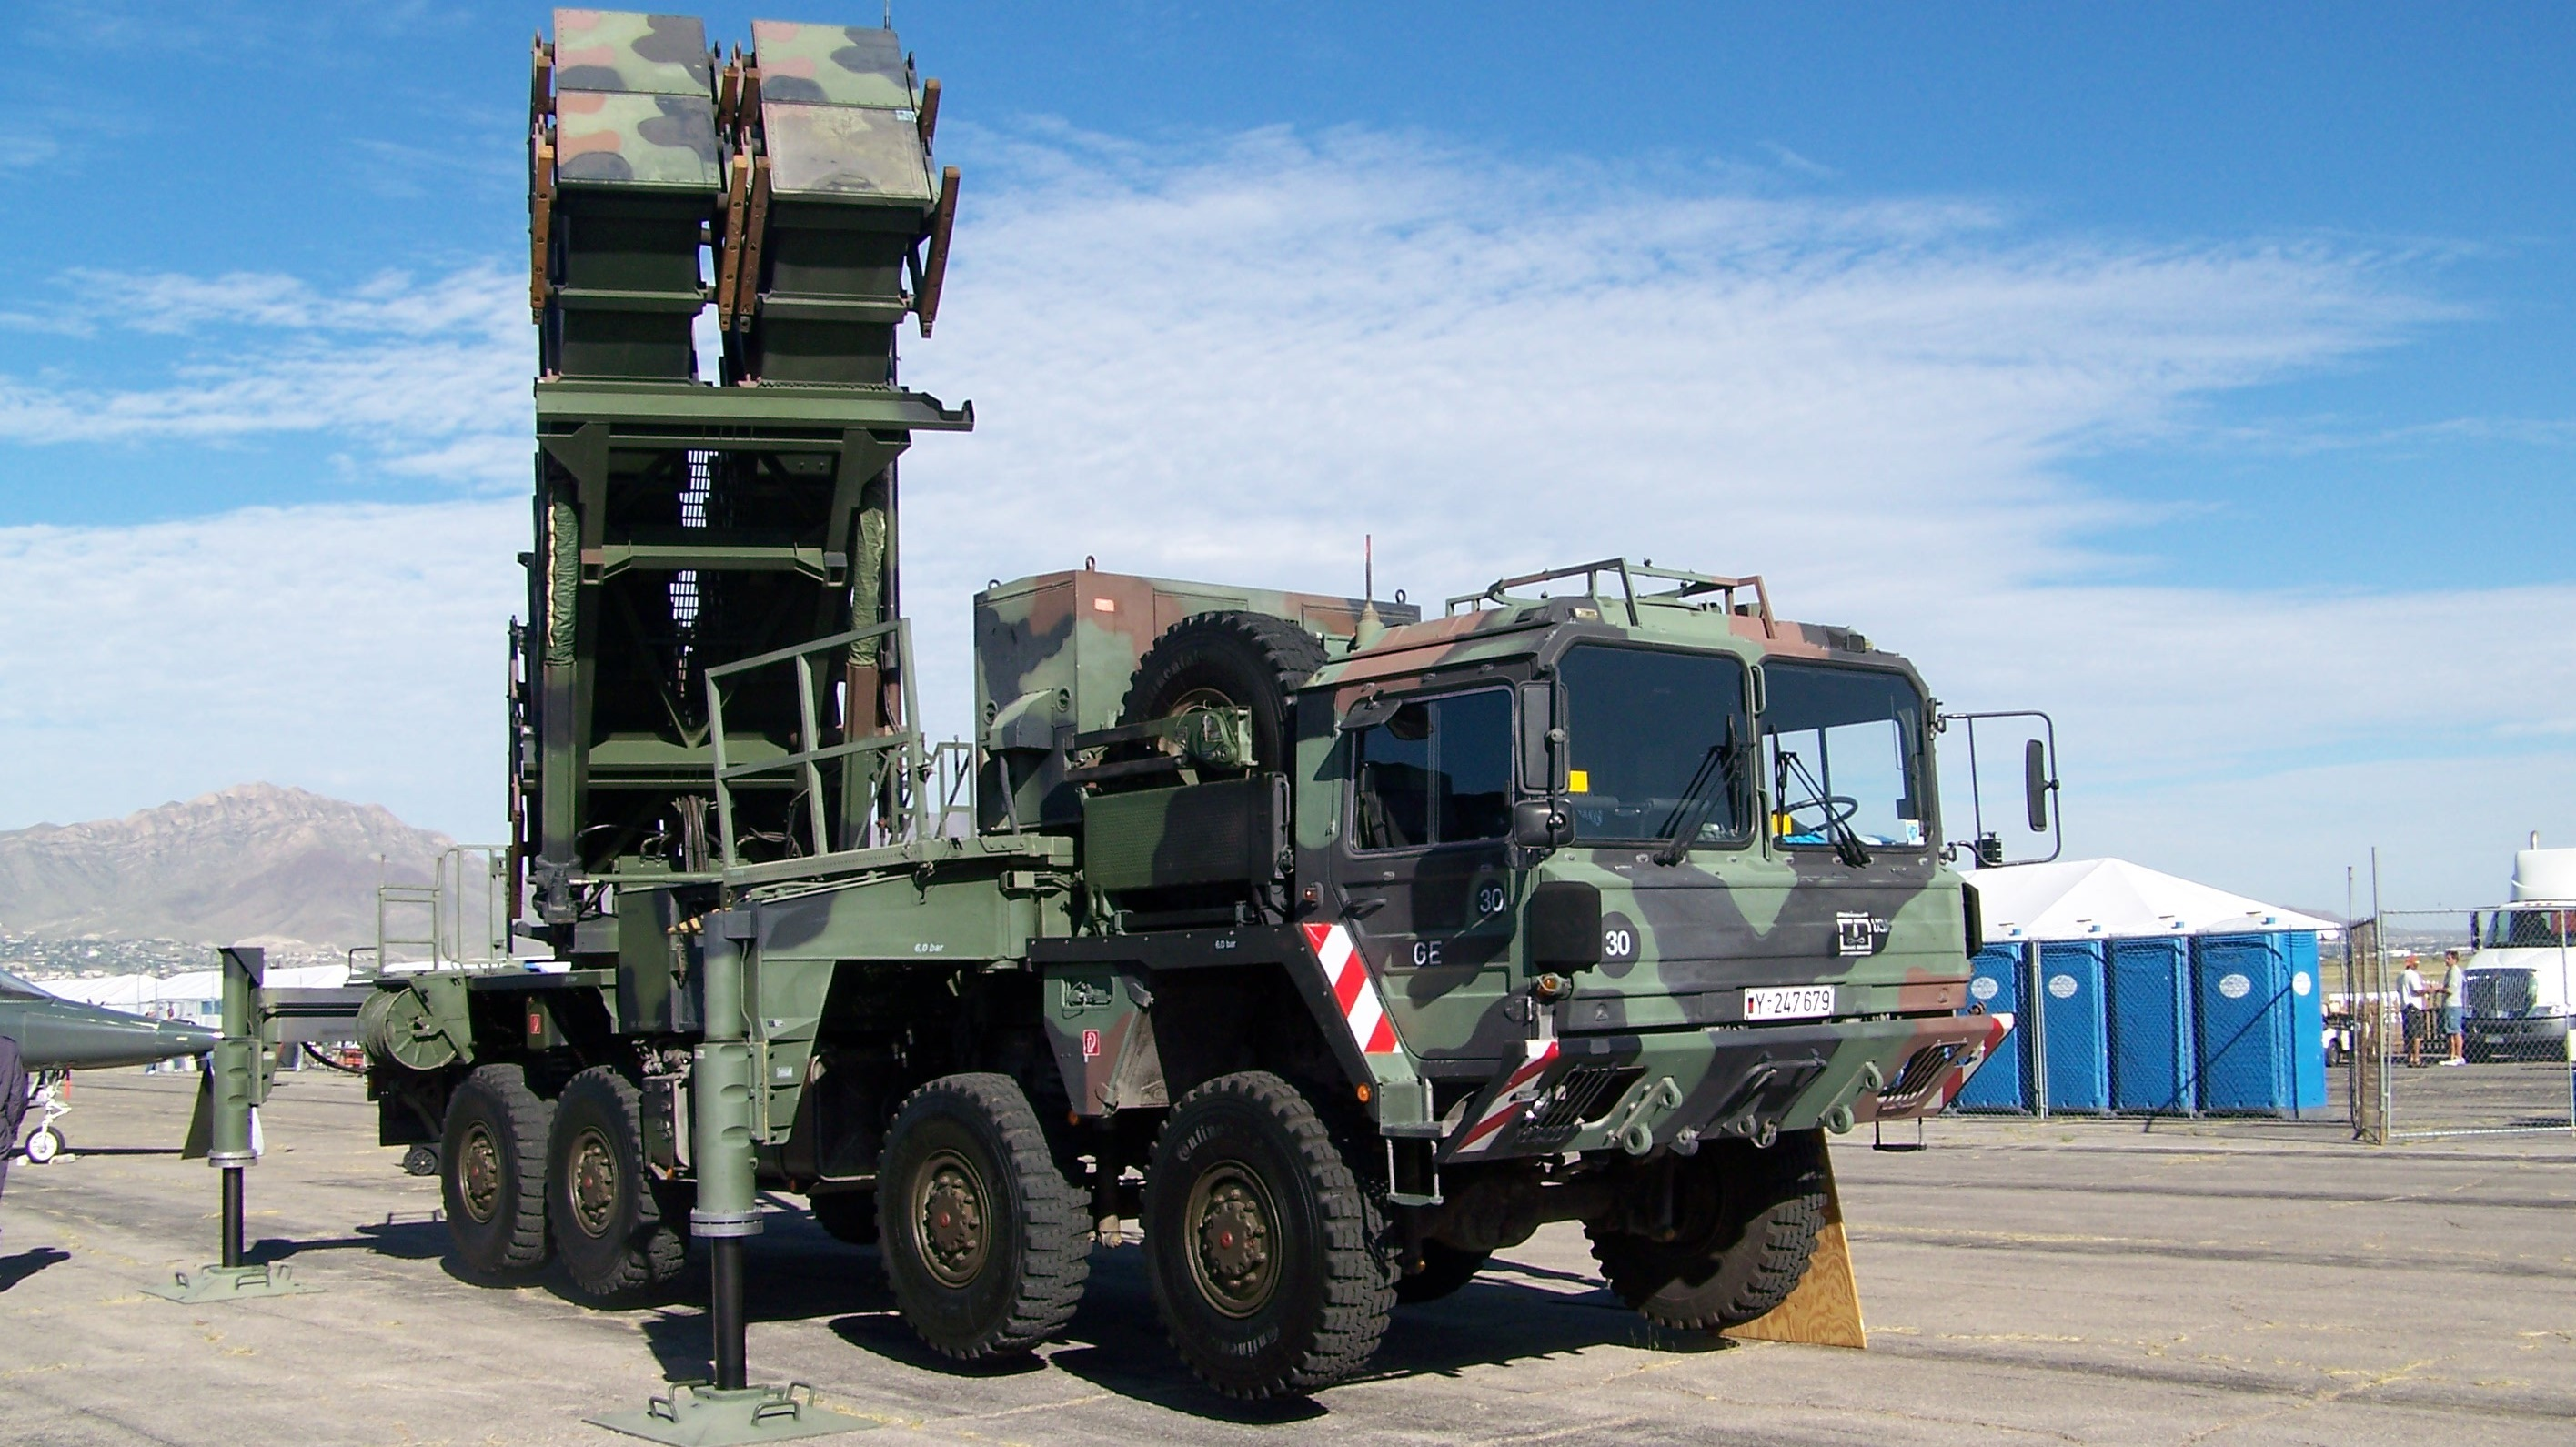 S 300 missile systems vs patriot - German Mim 104 Patriot Sam Launcher Photo Courtesy Of Wikipedia Commons